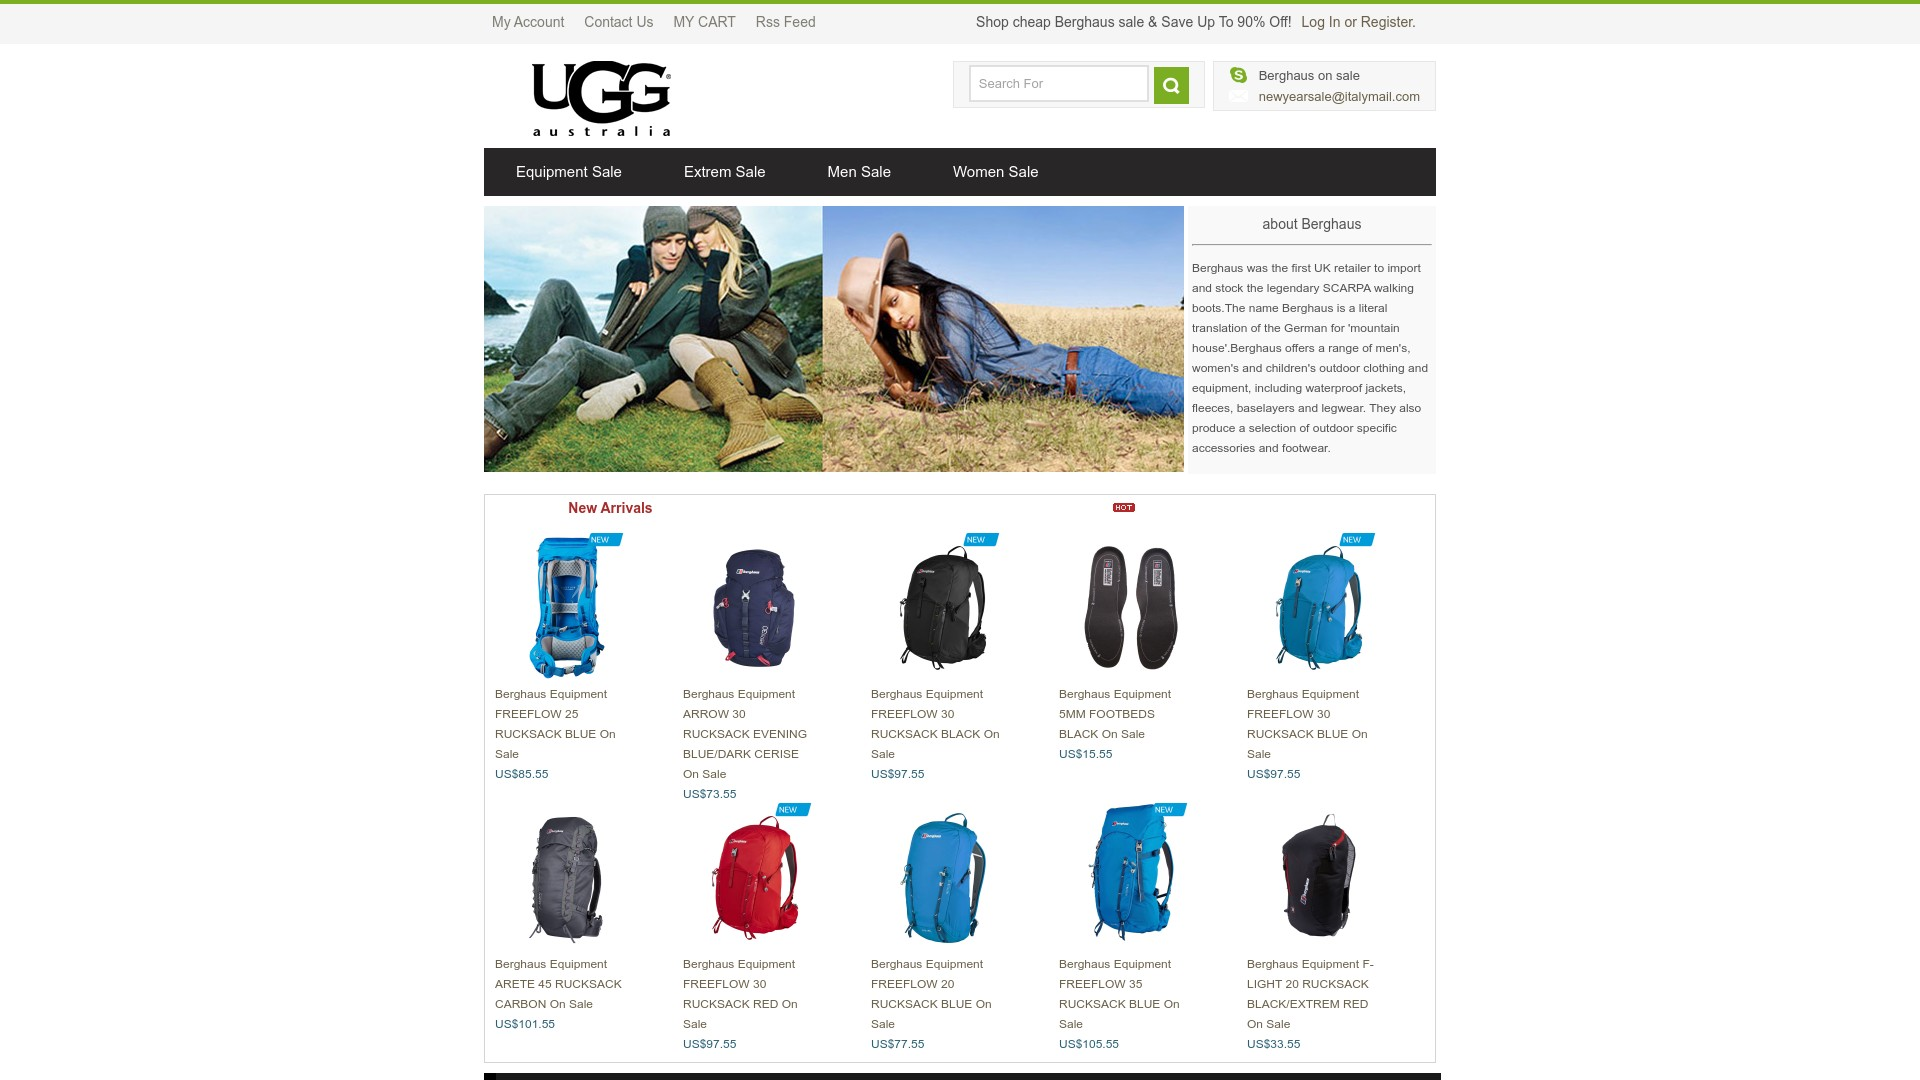 Is Berghaus Sale a Scam? Review of the Online Store